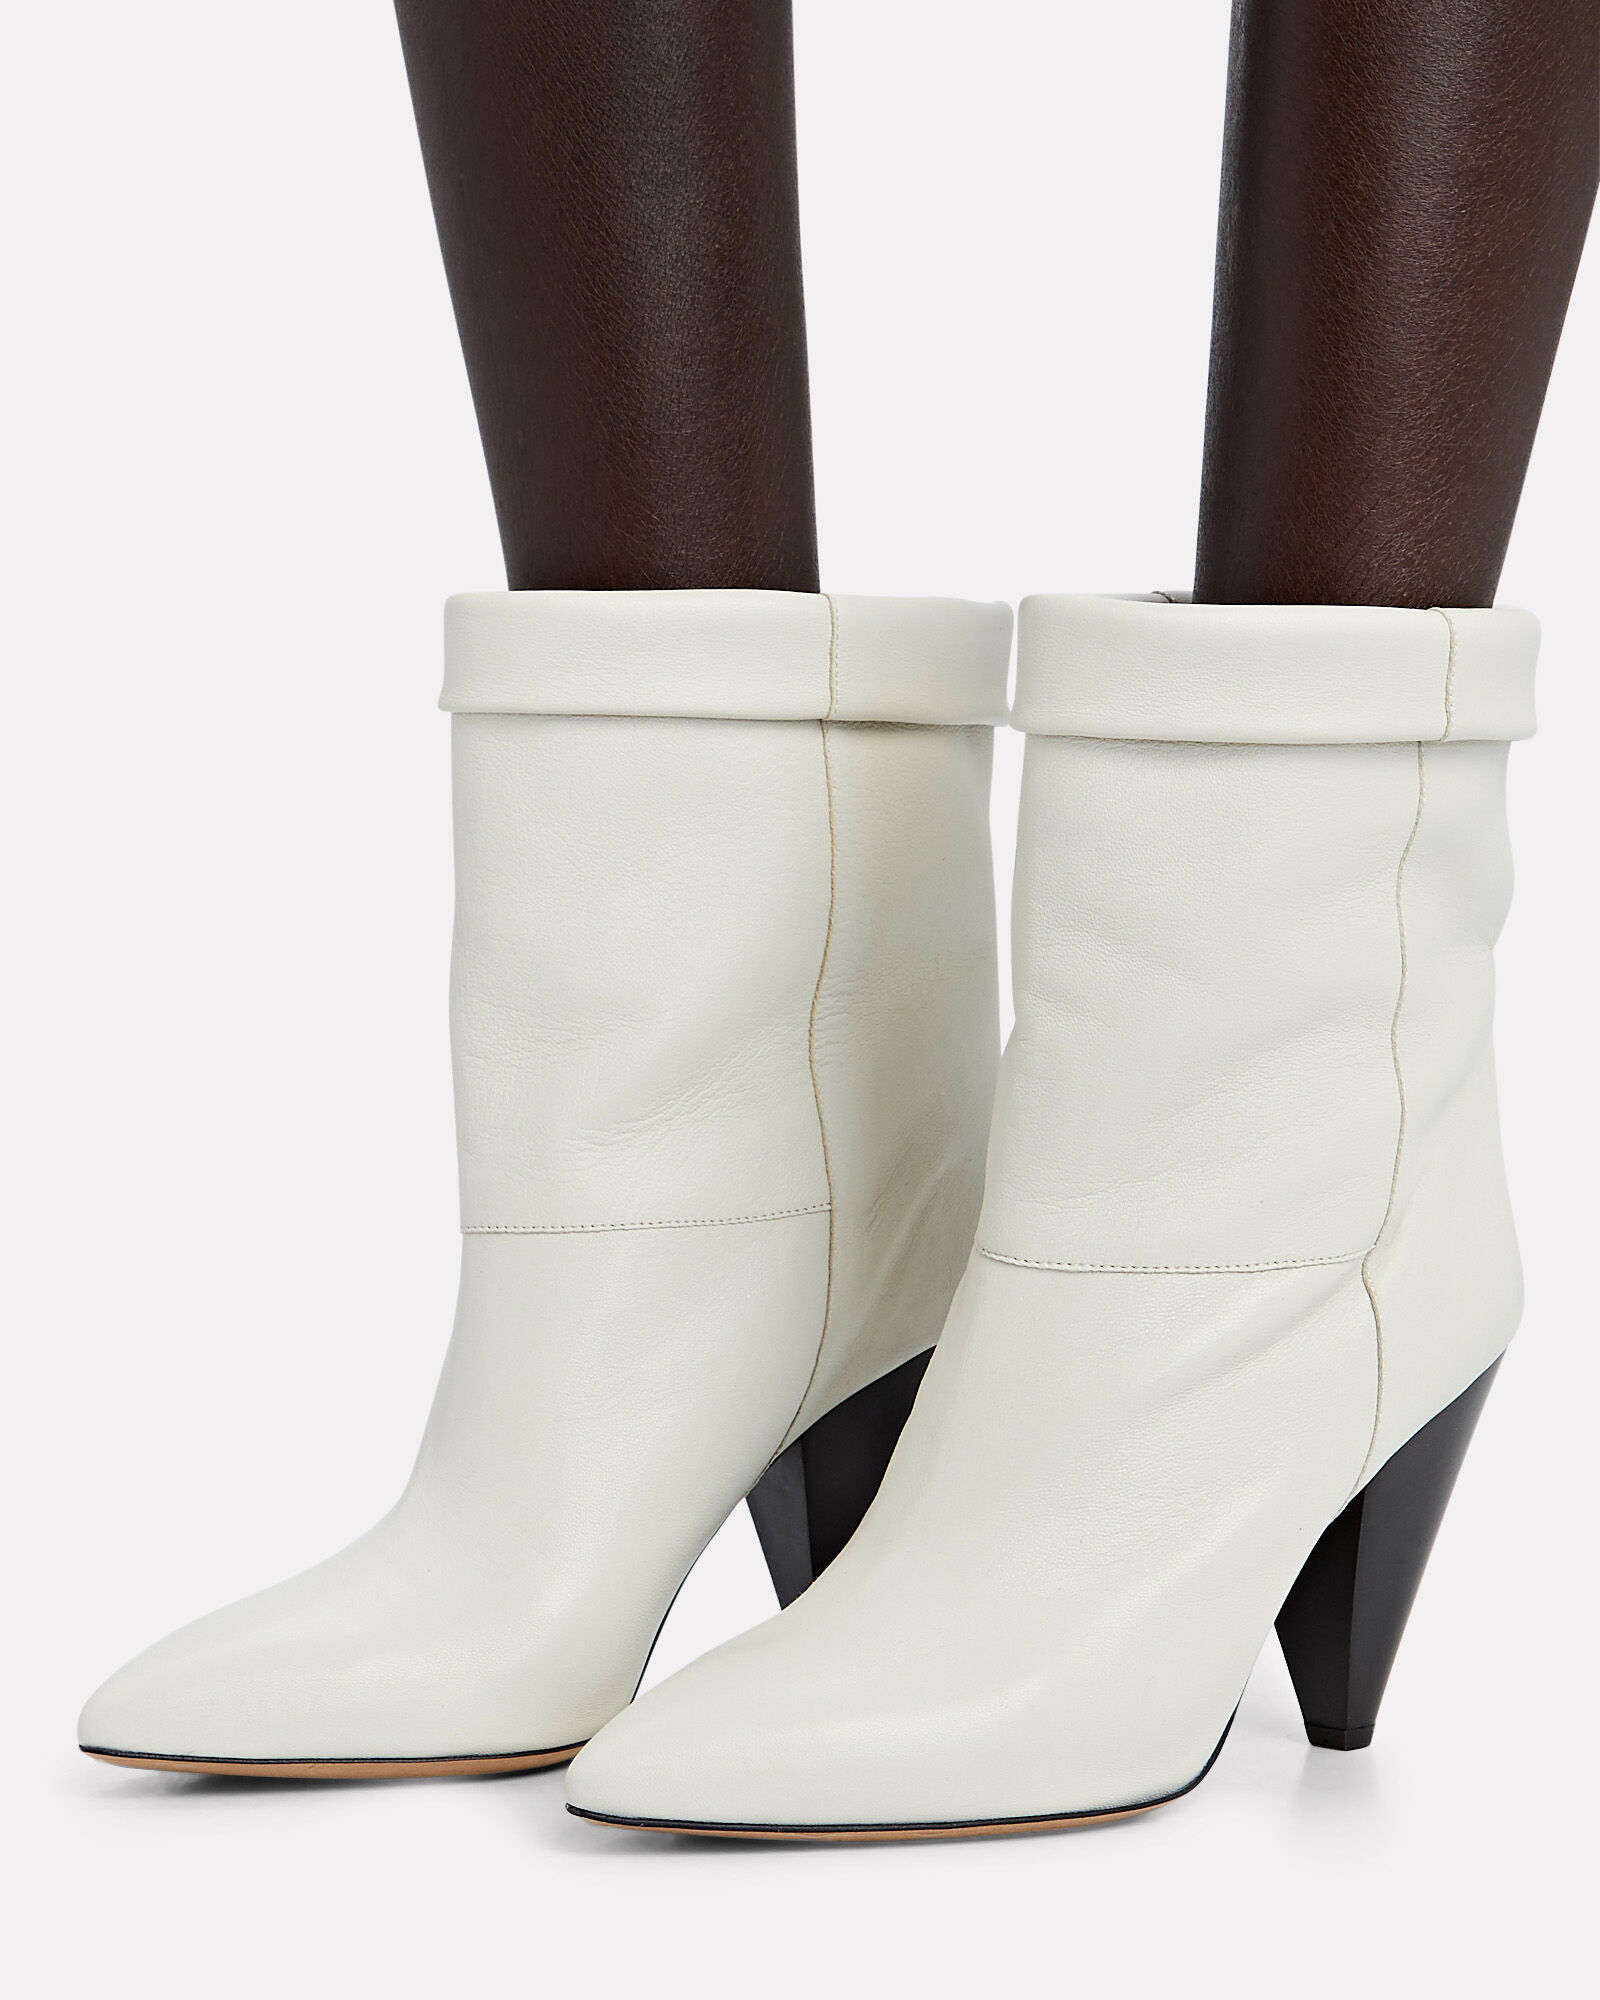 Luido Leather Ankle Boots, IVORY, hi-res